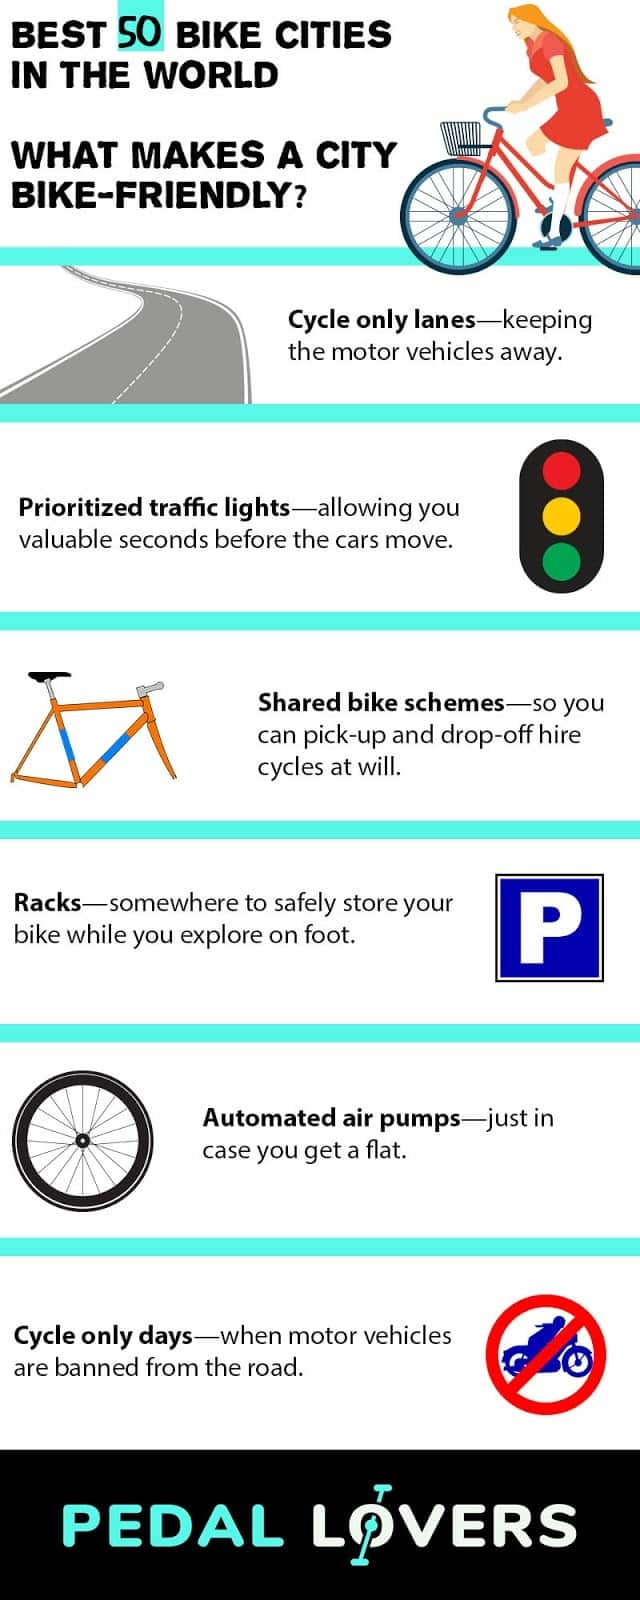 bike friendly cities infographic